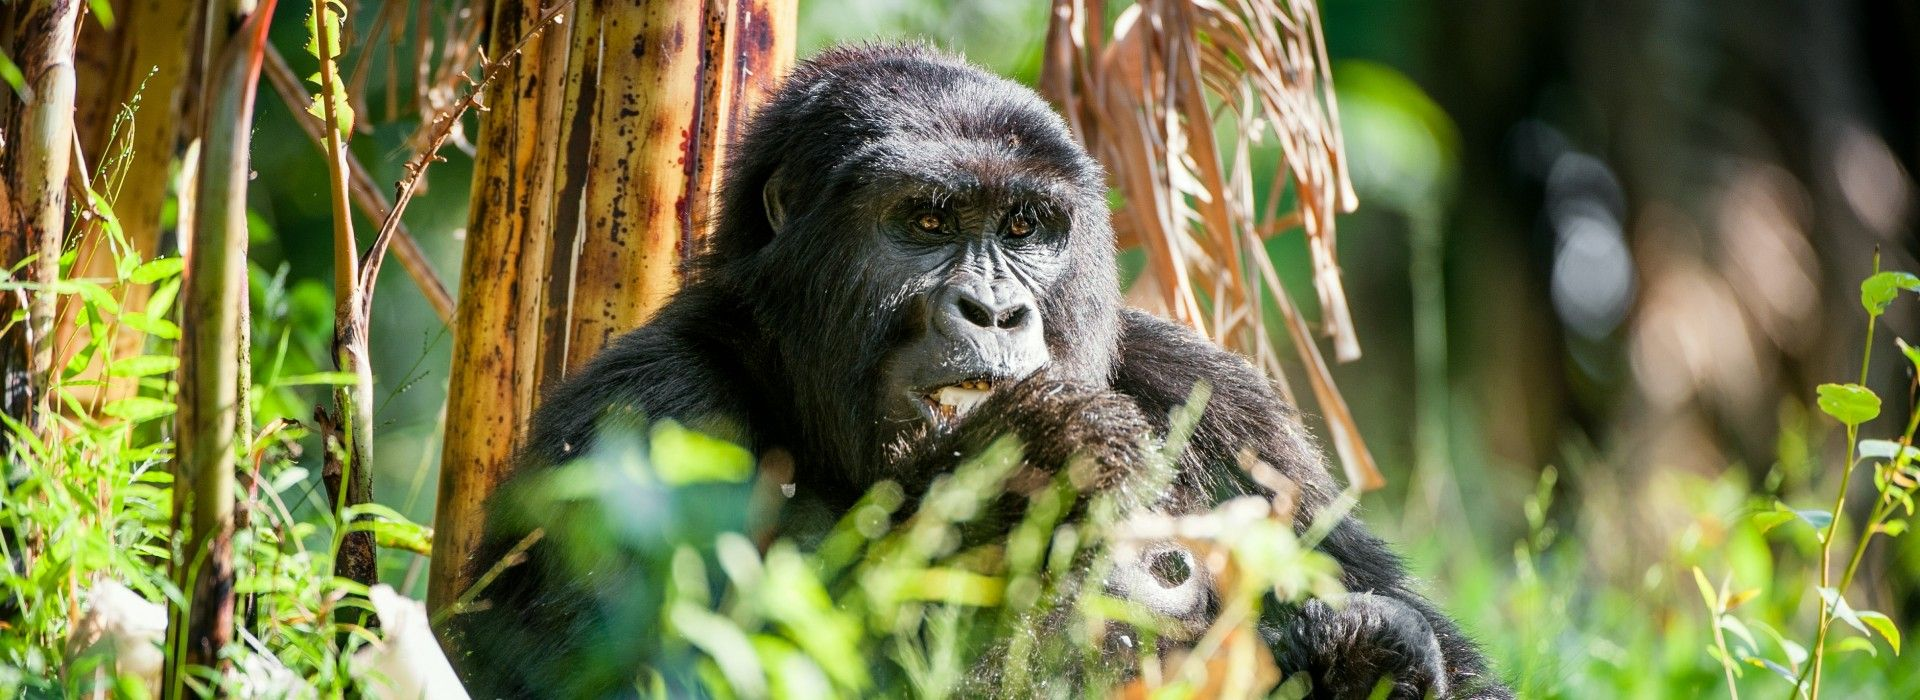 Sightseeing, attractions, culture and history Tours in Uganda